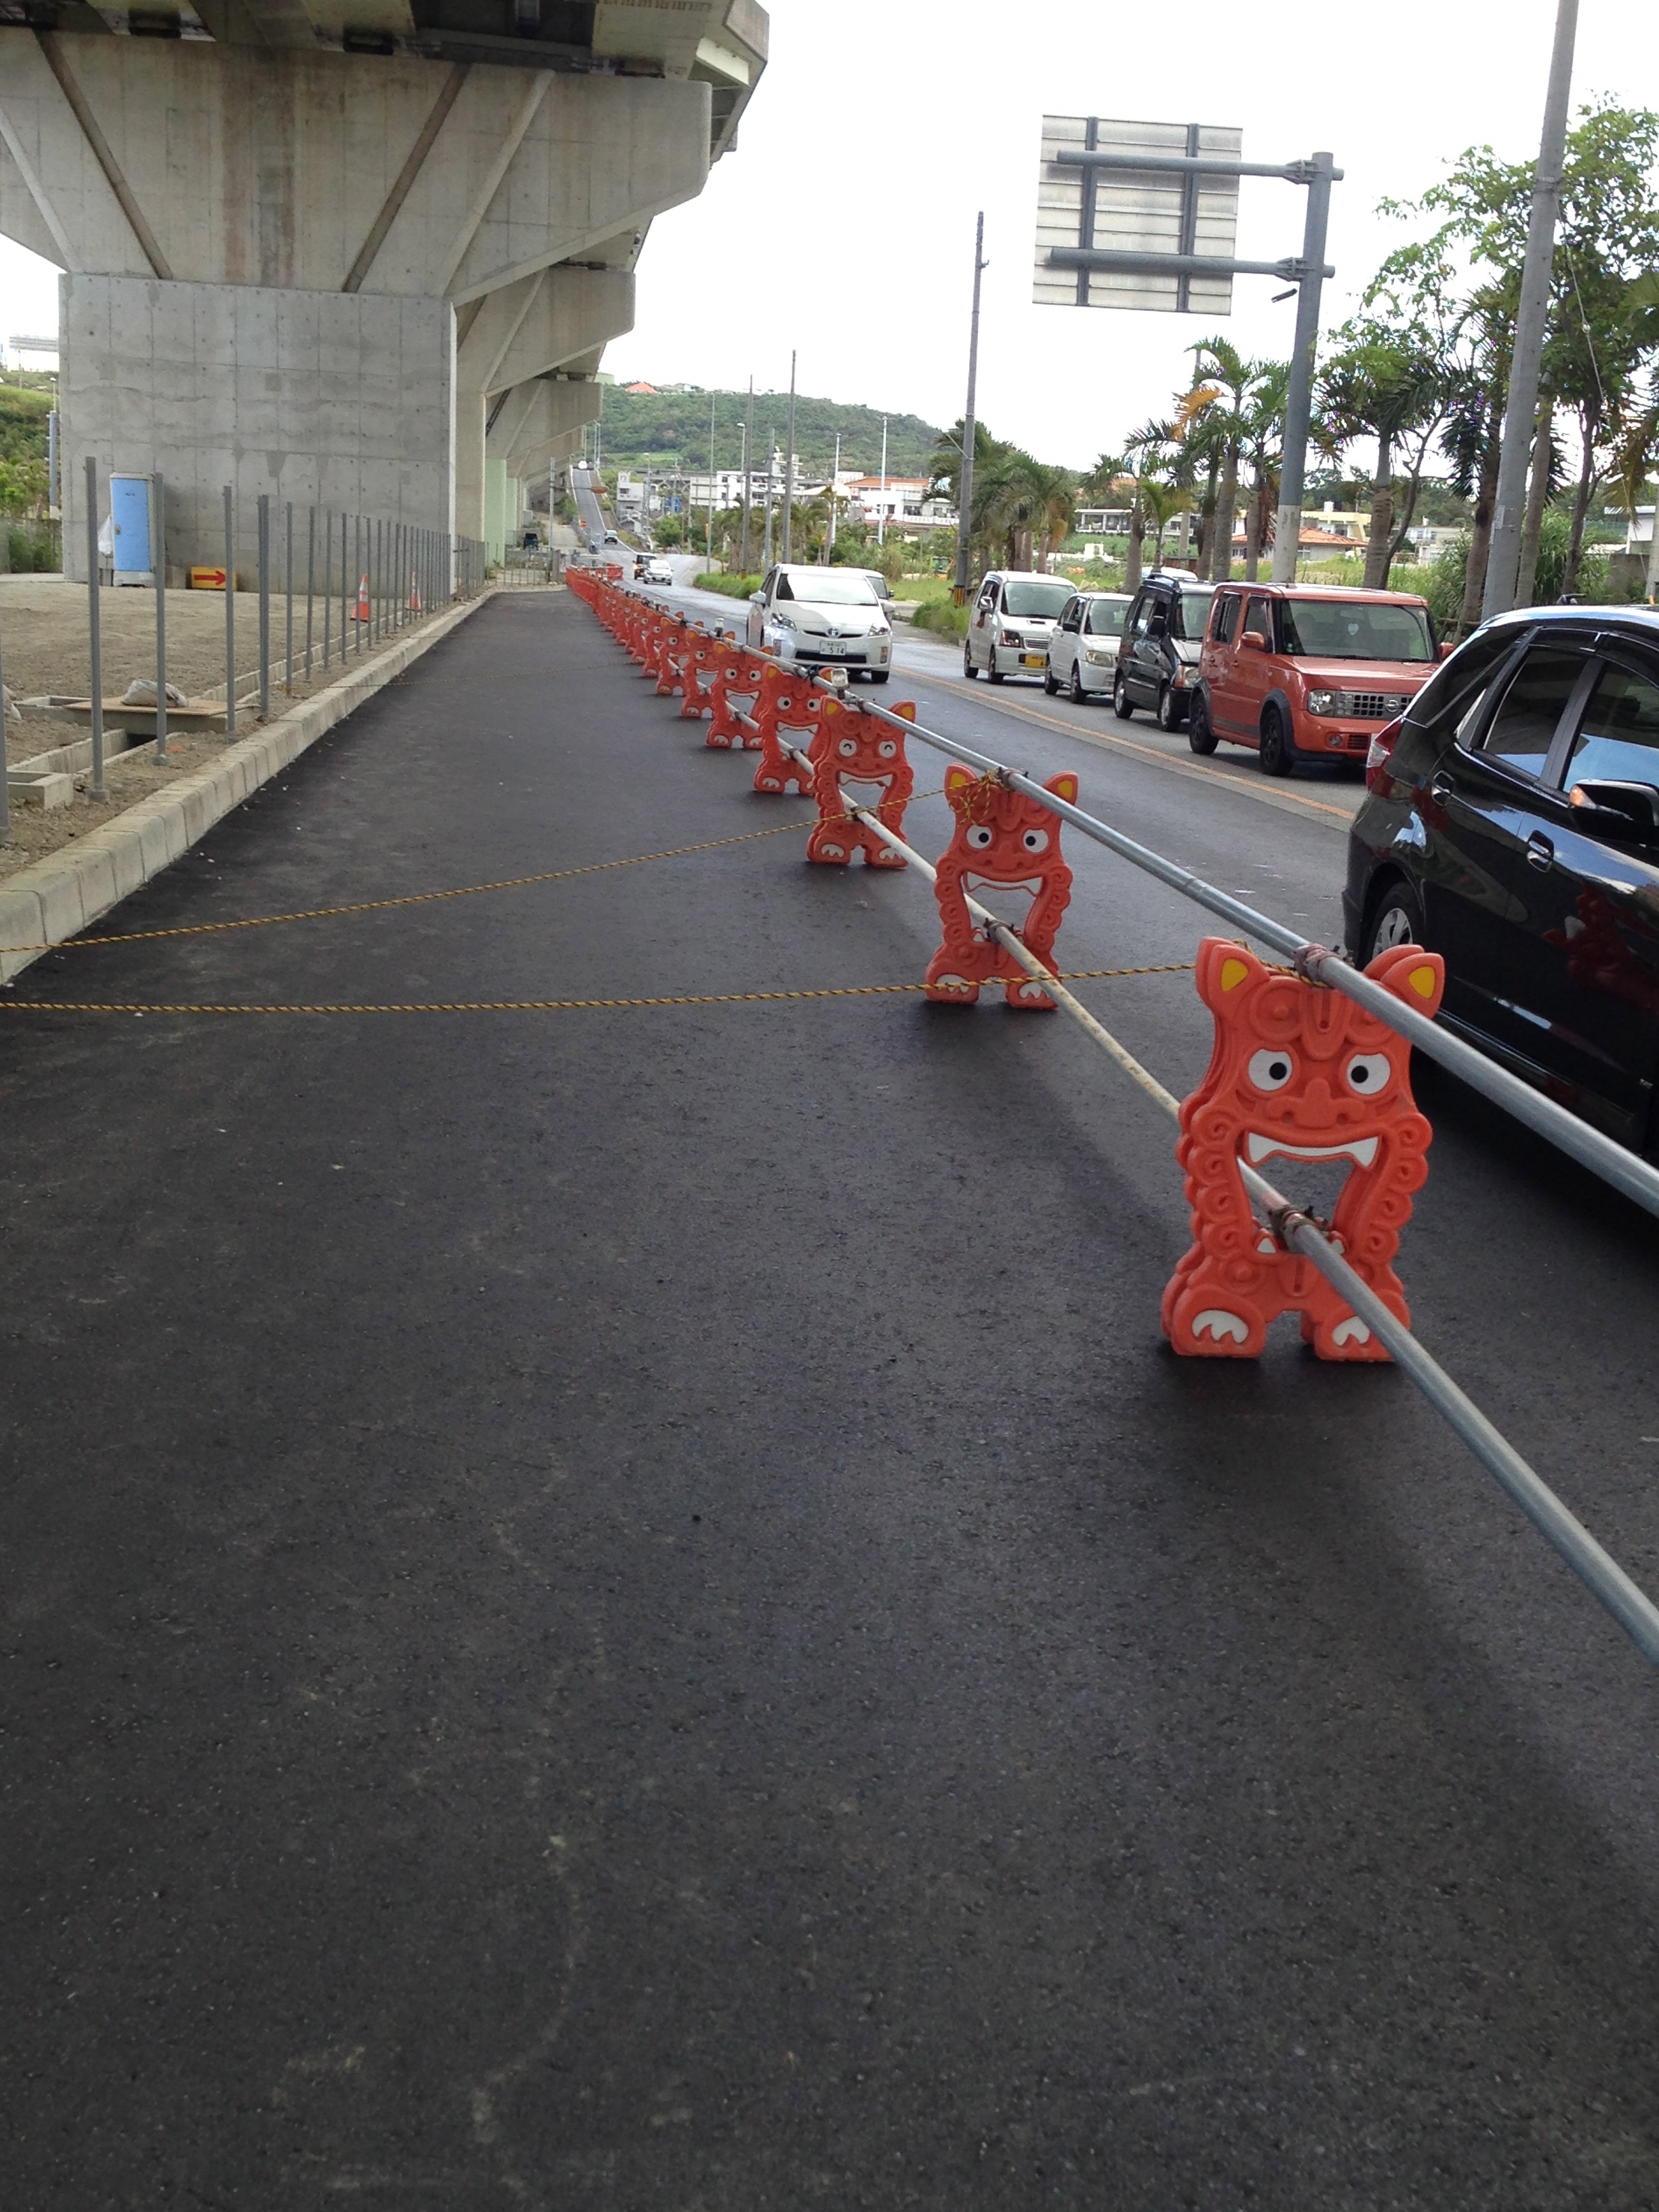 More shiisa. Only the Japanese could make road cones/barriers adorable and a joy to behold.